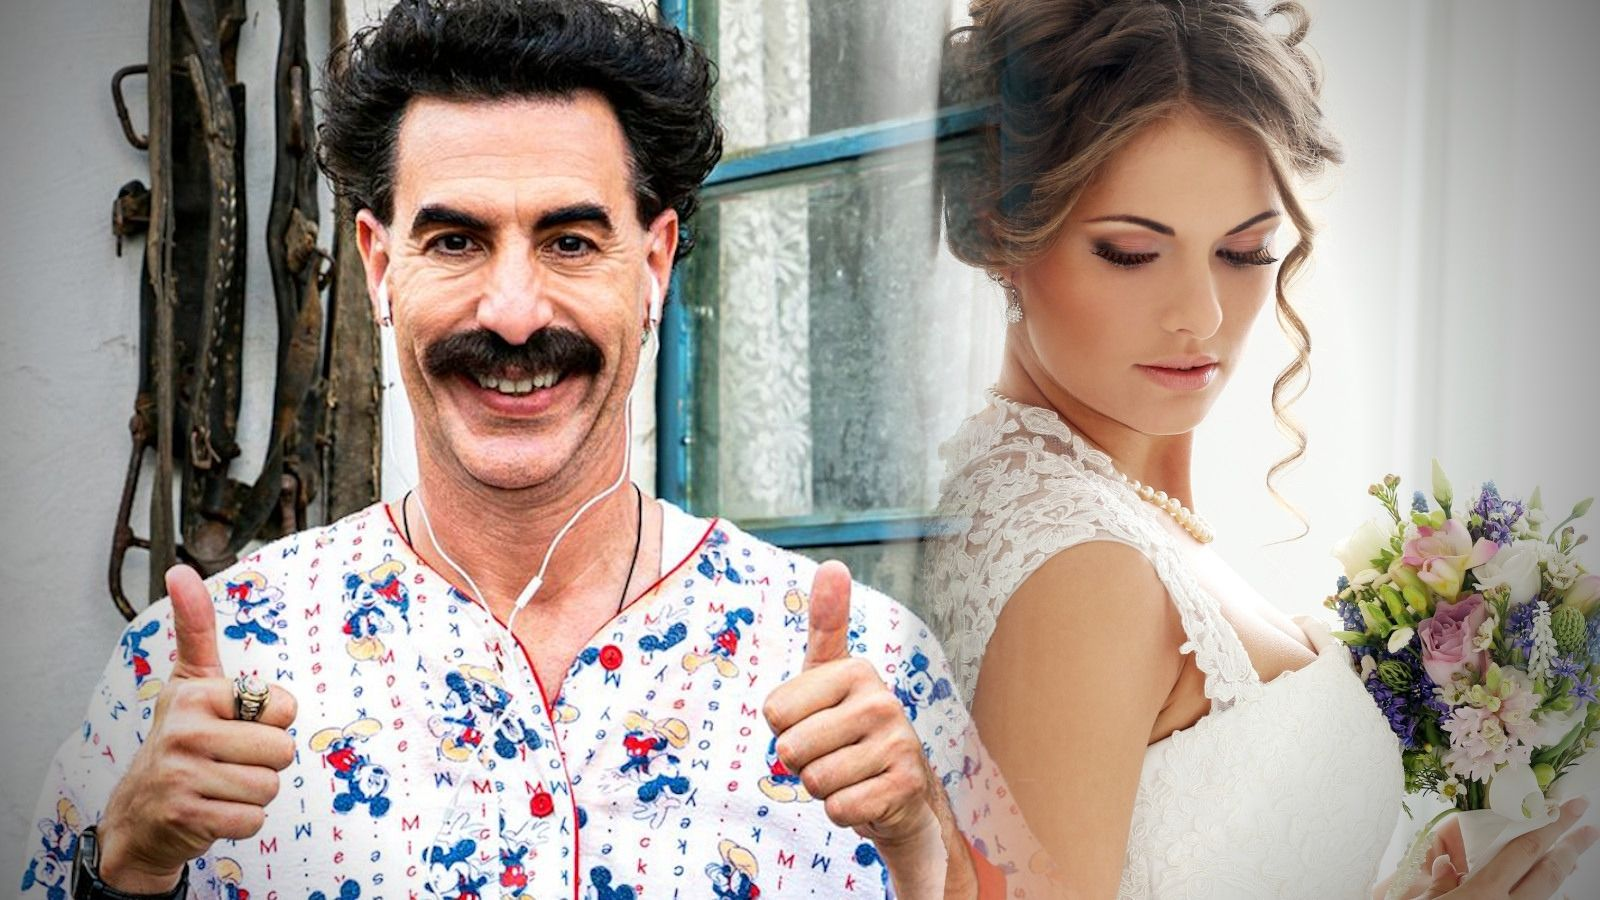 borat subsequent moviefilm reddit marriage ama